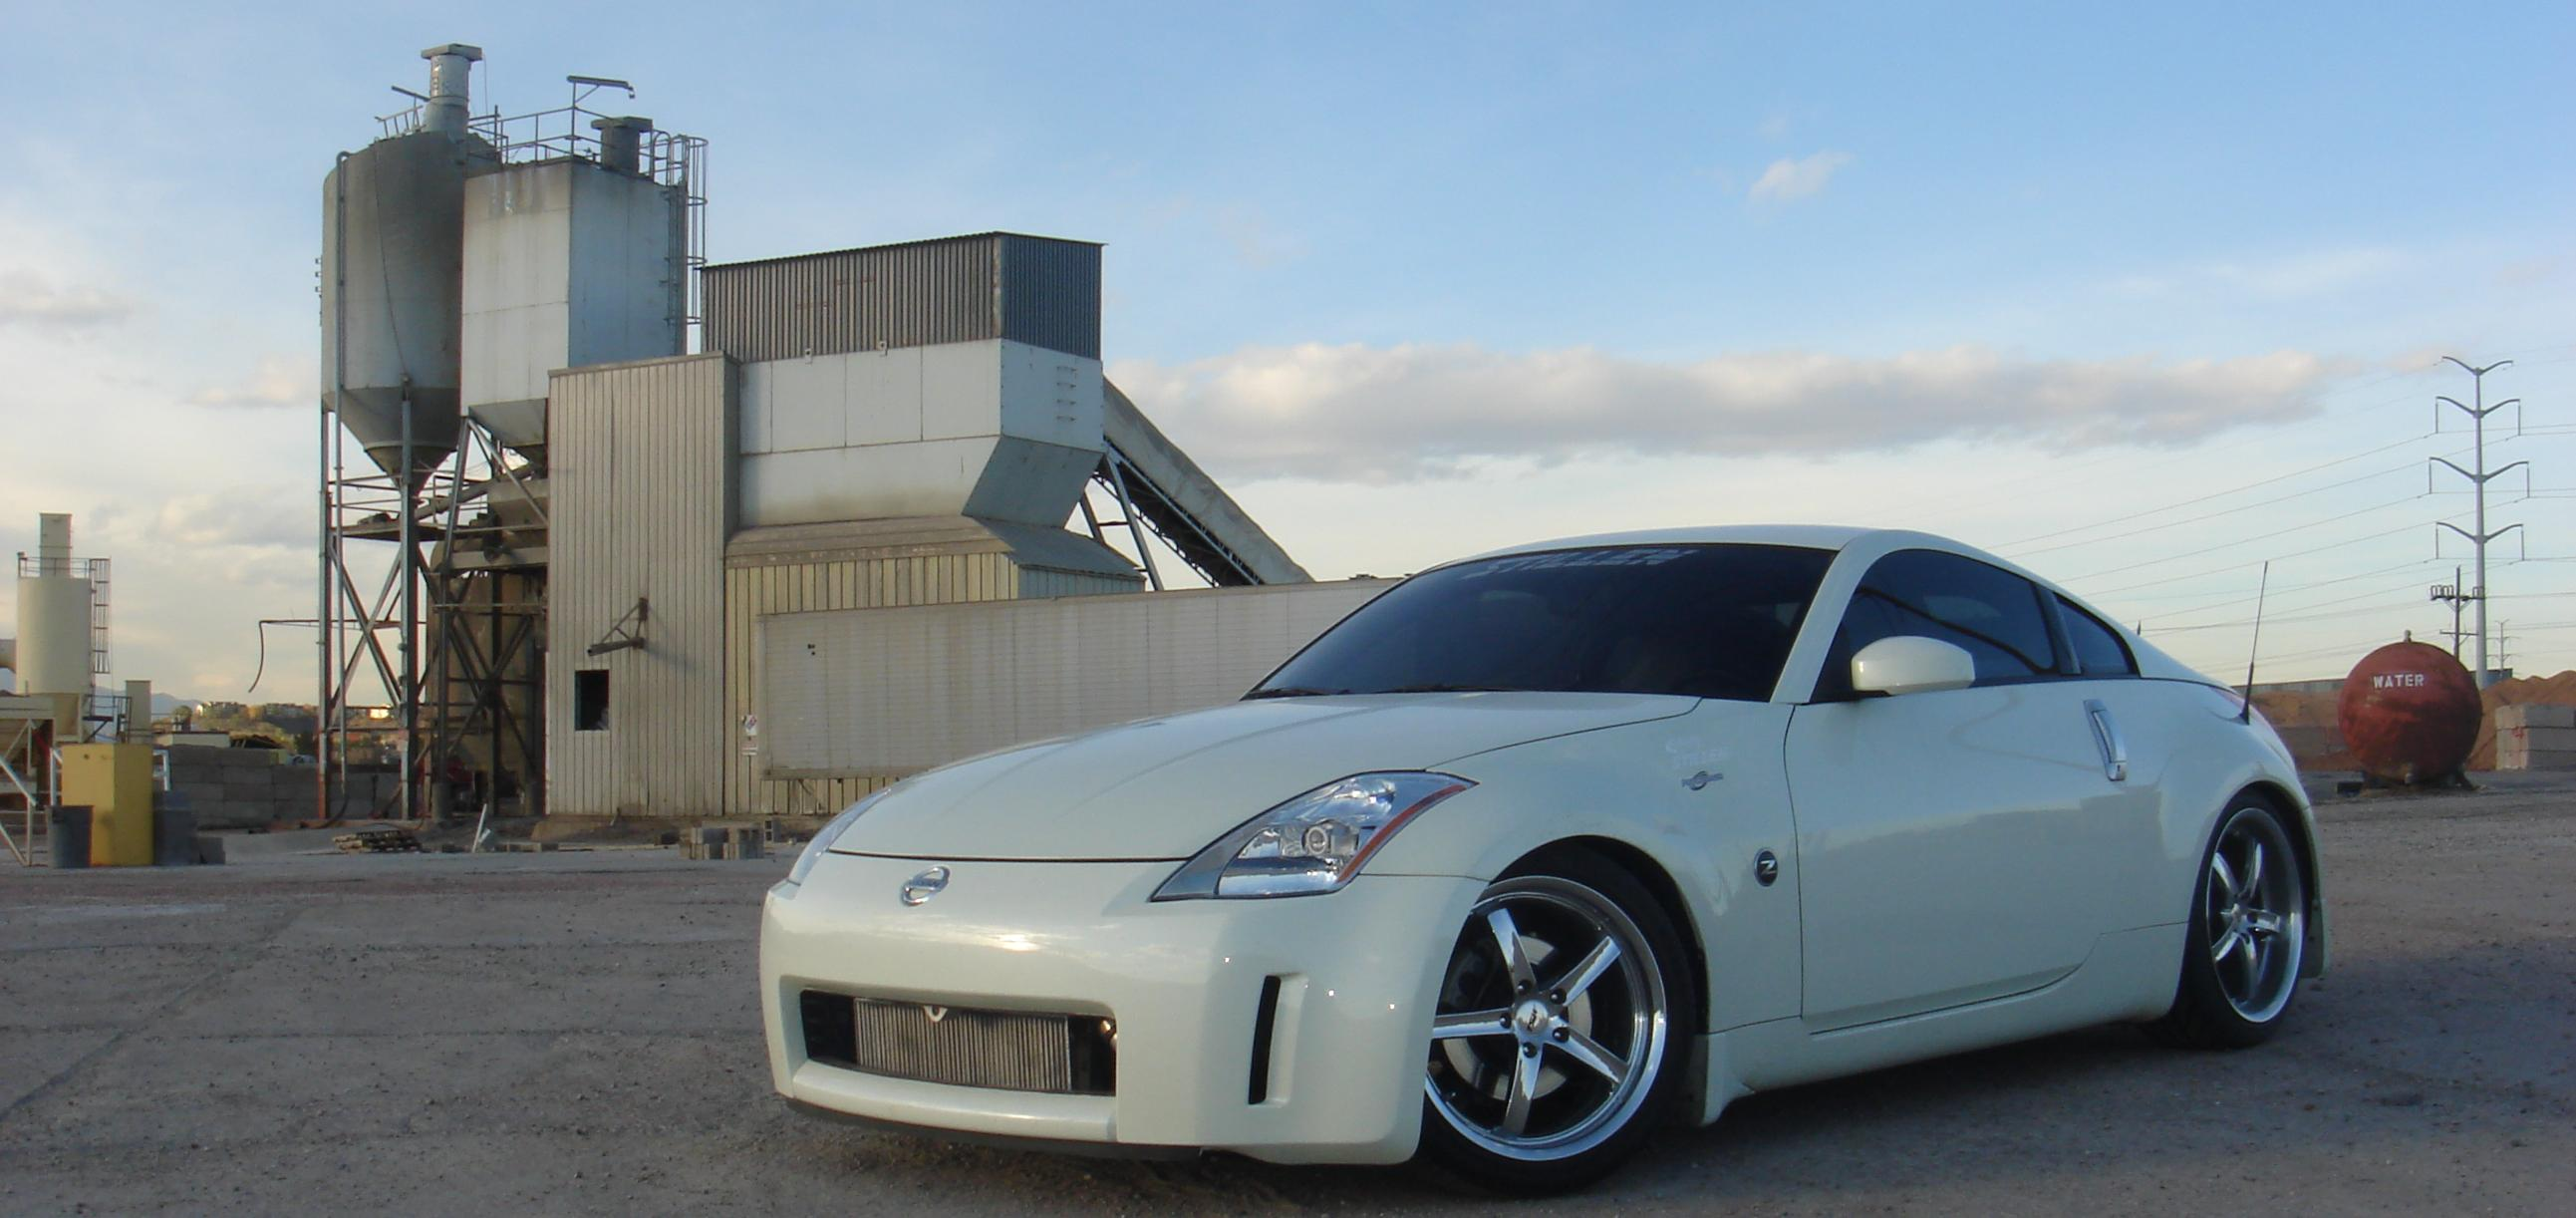 2003  Nissan 350Z Touring Procharger Supercharger picture, mods, upgrades